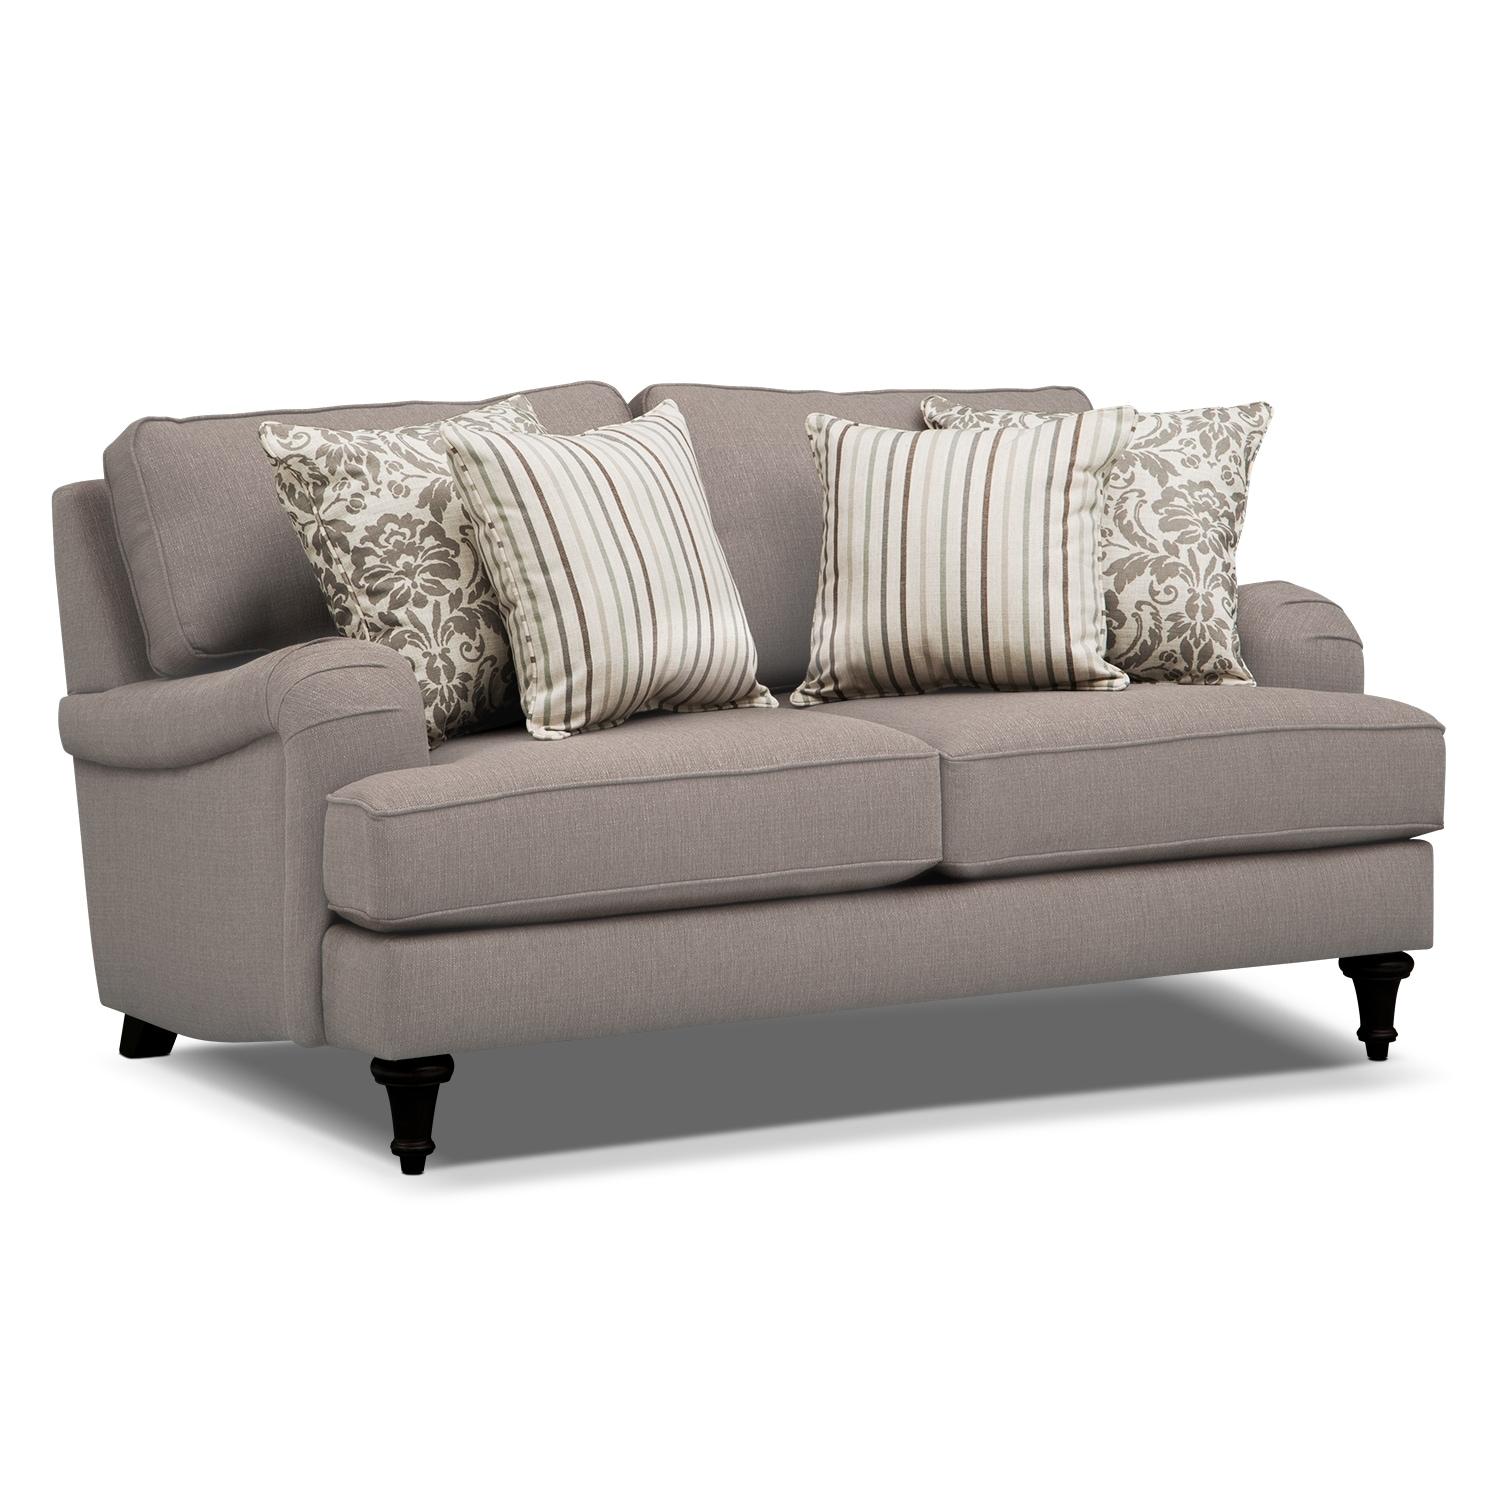 Candice loveseat gray american signature furniture for American signature couch